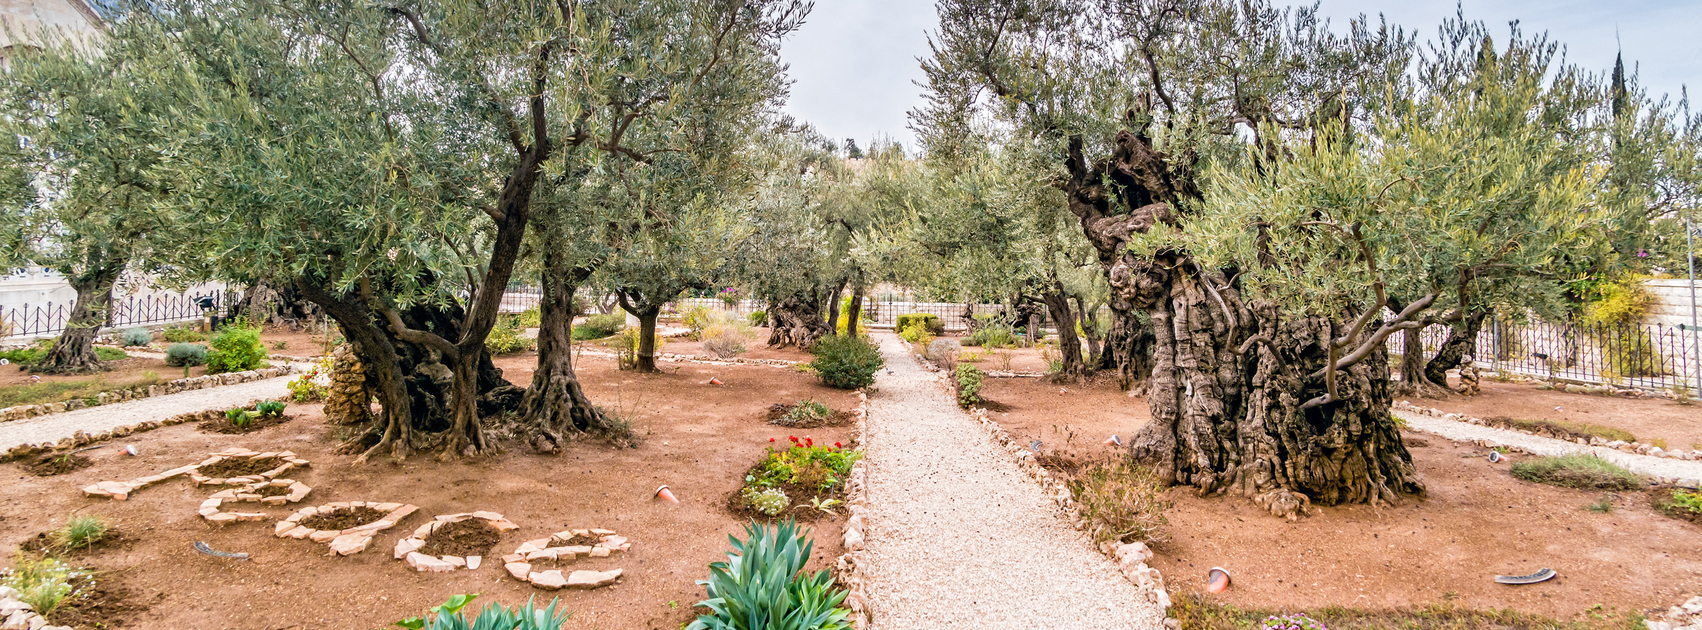 The Ancient Olive Trees In The Garden Of Gethsemane Sponsor An Olive Tree In Israel